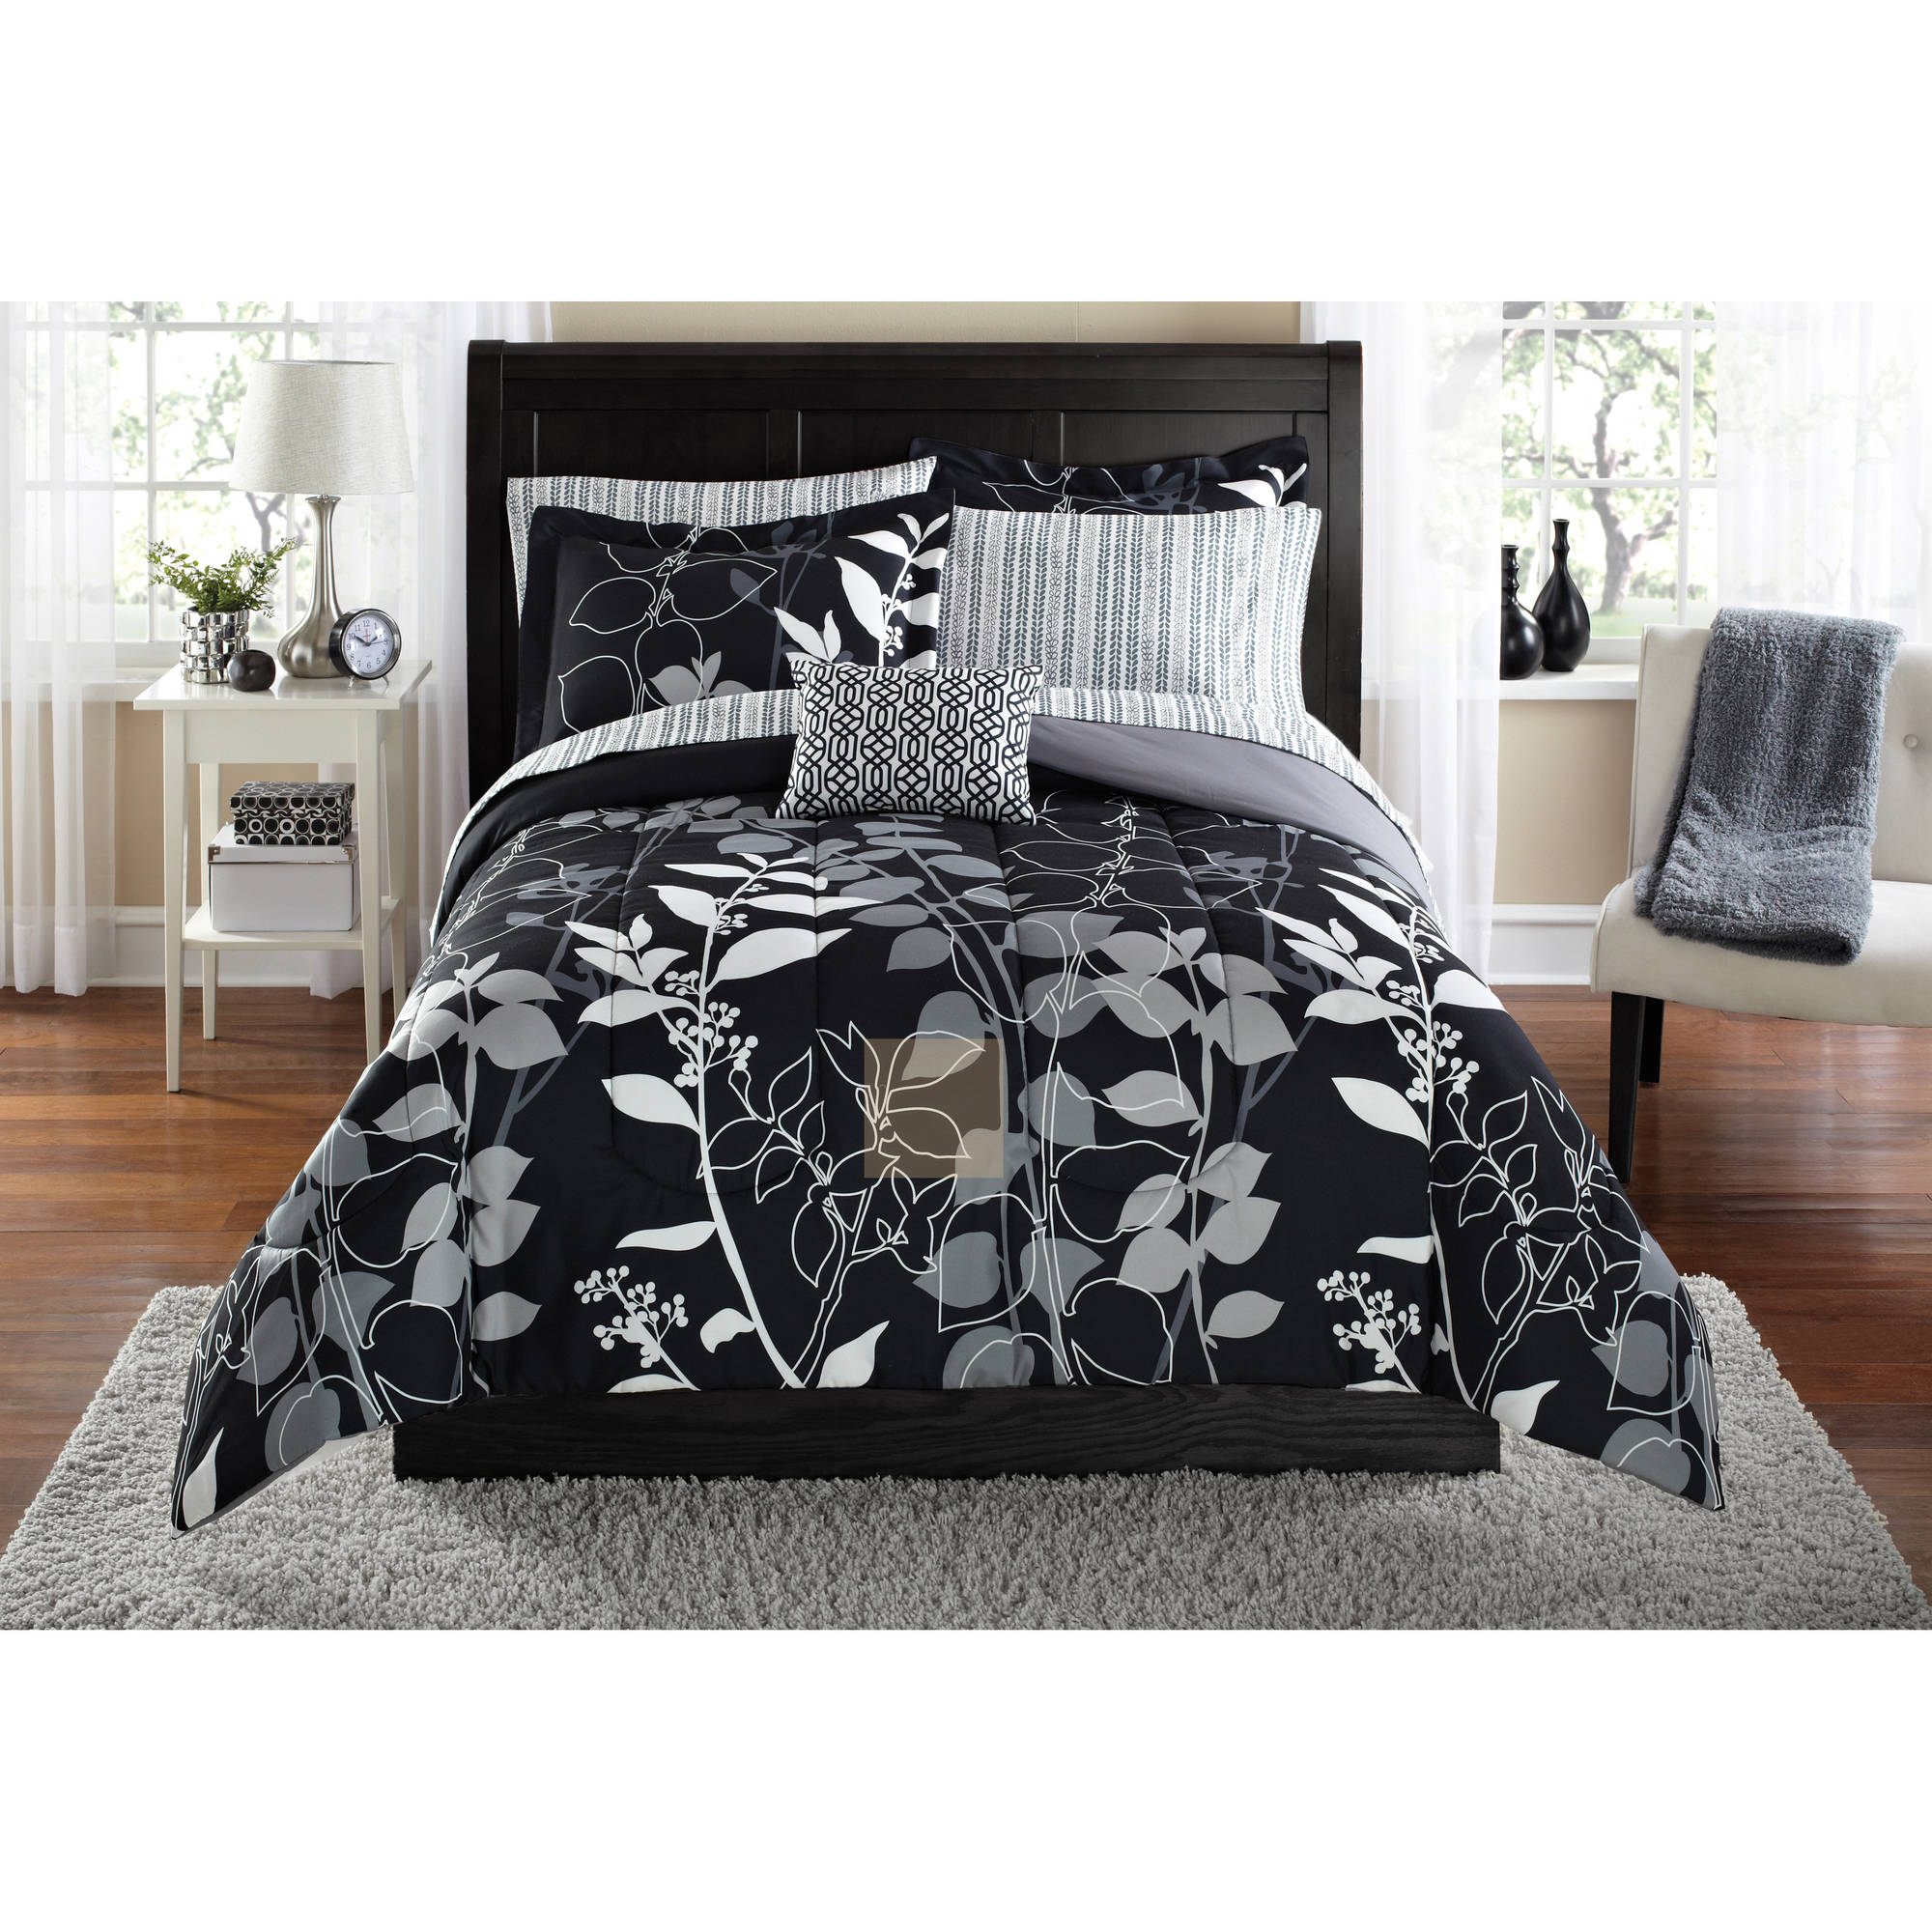 Black and white bedding walmart - Black And White Bedding Walmart 2